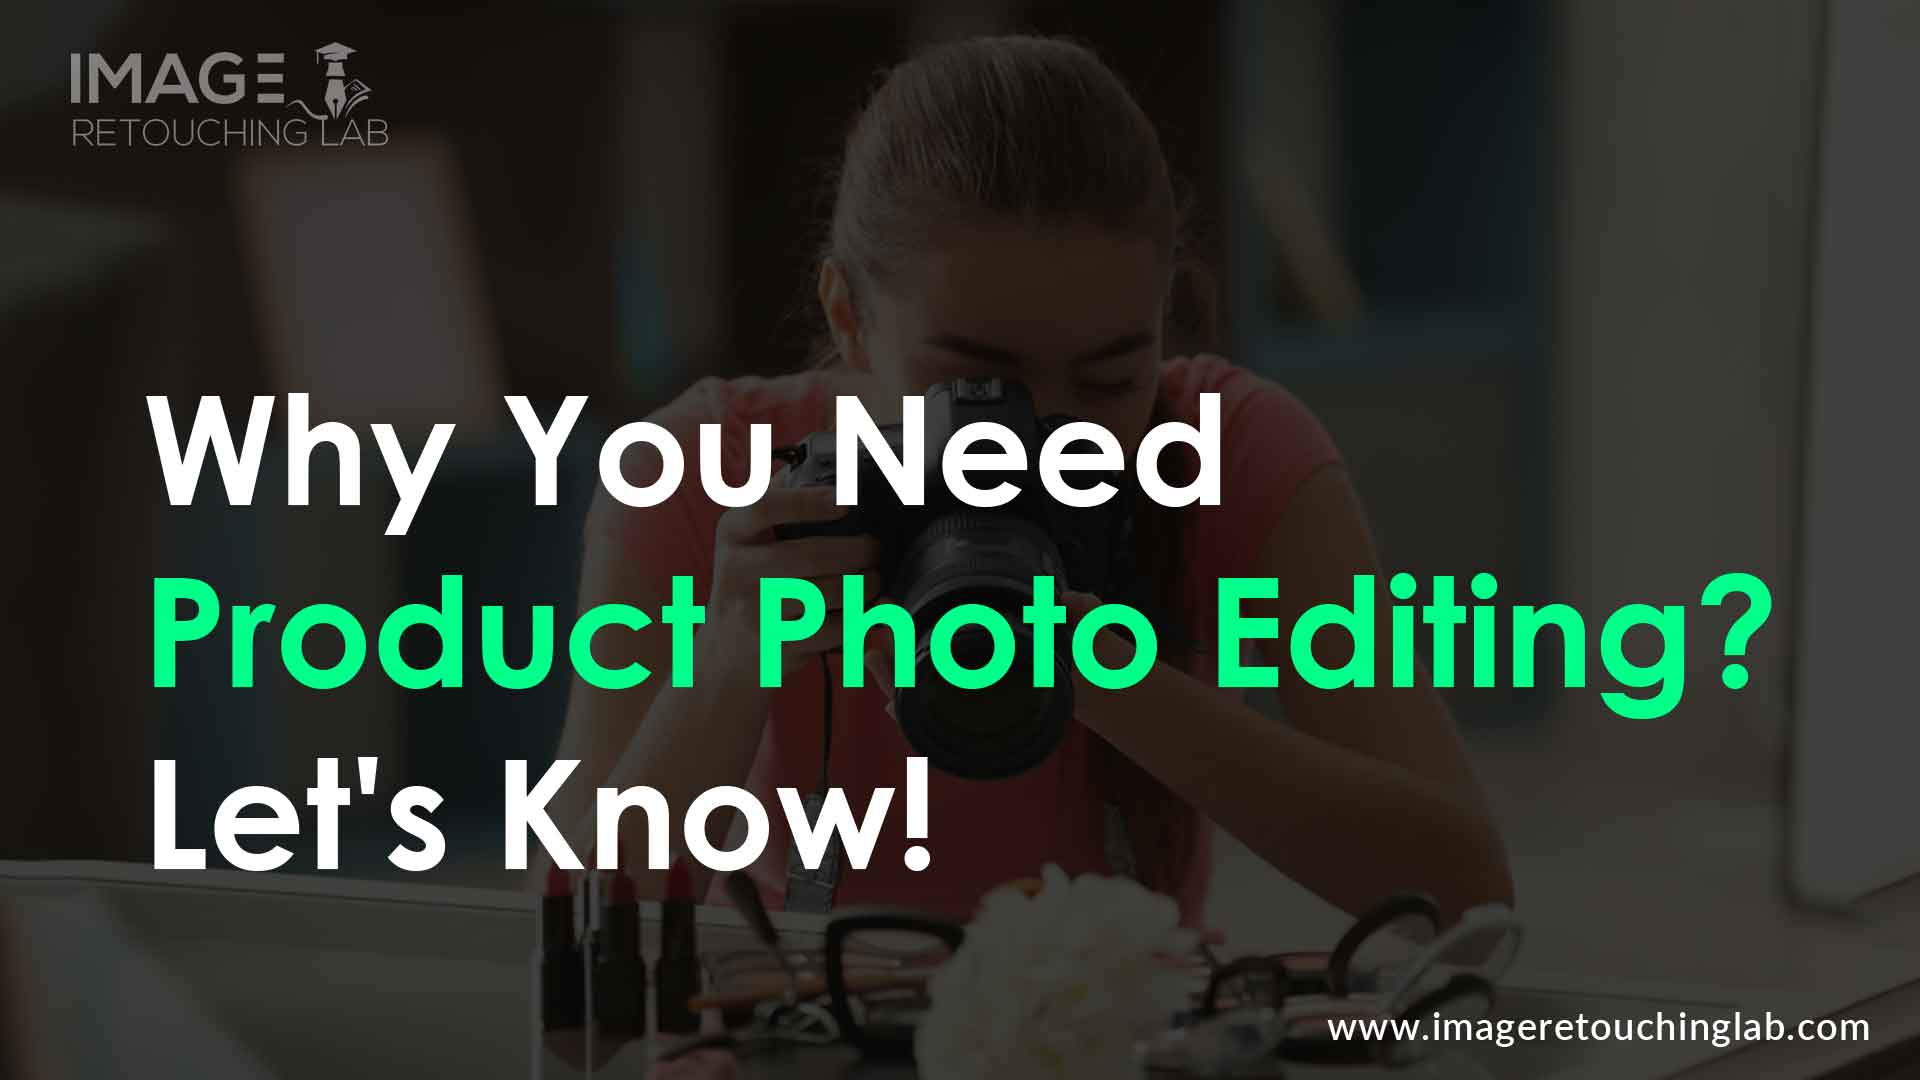 Why You Need Product Photo Editing? Let's Know!